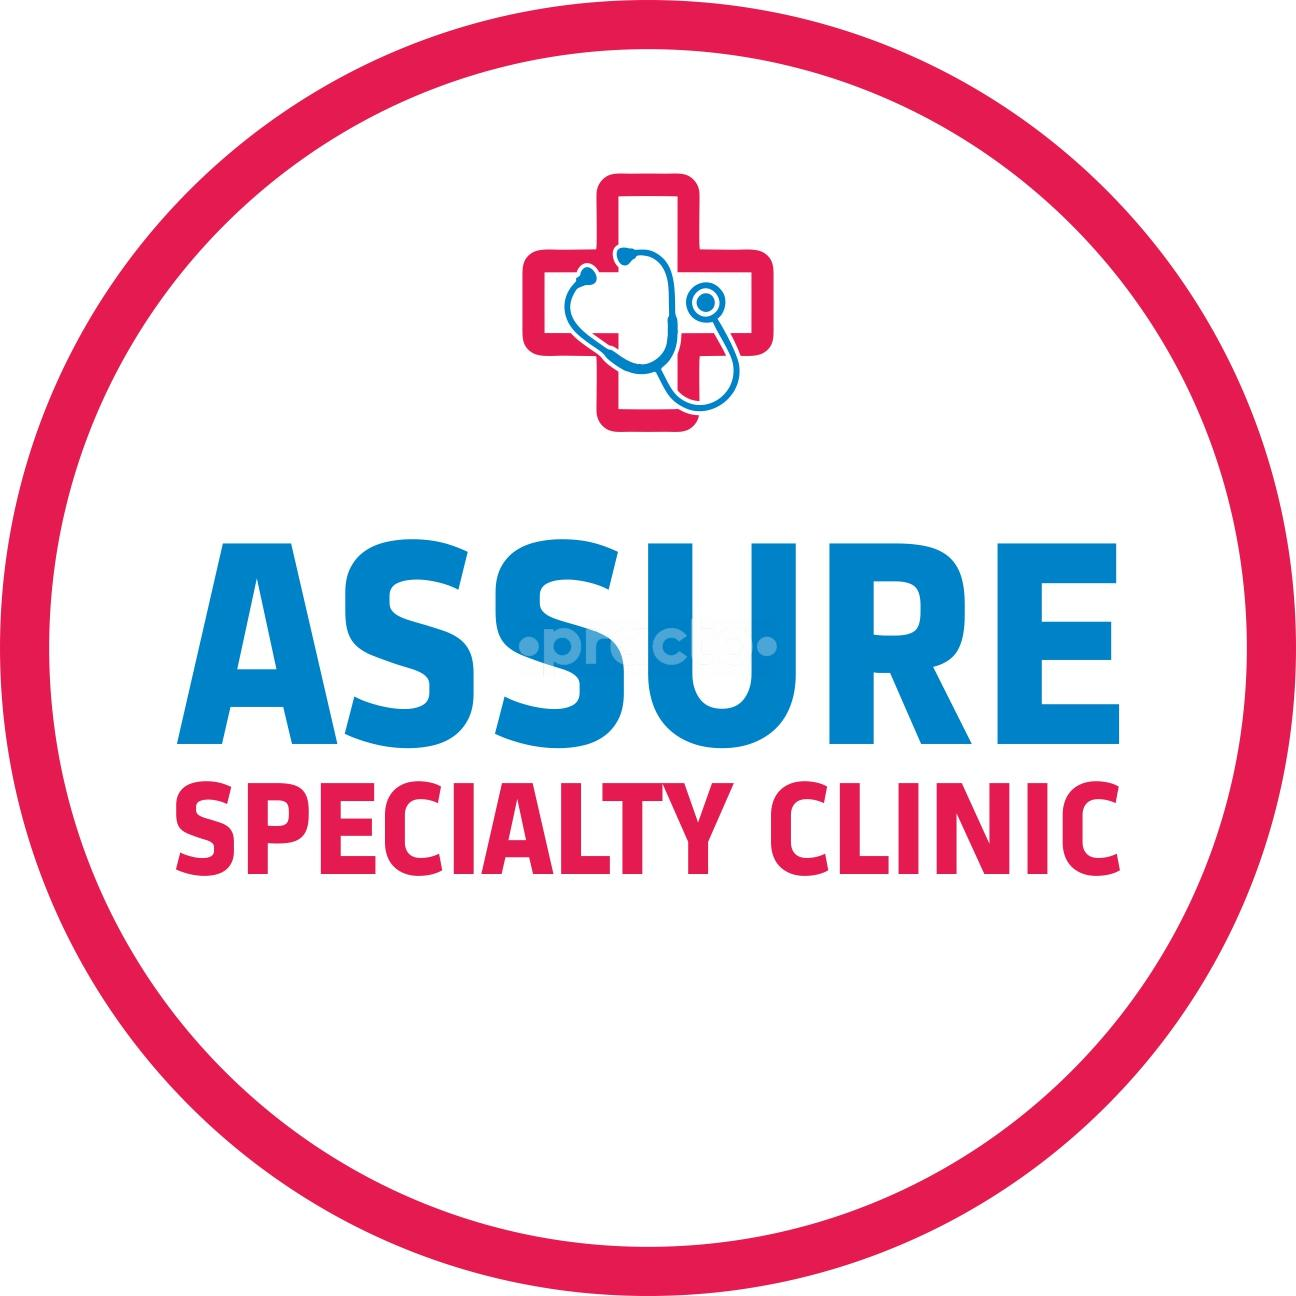 Assure Specialty Clinic